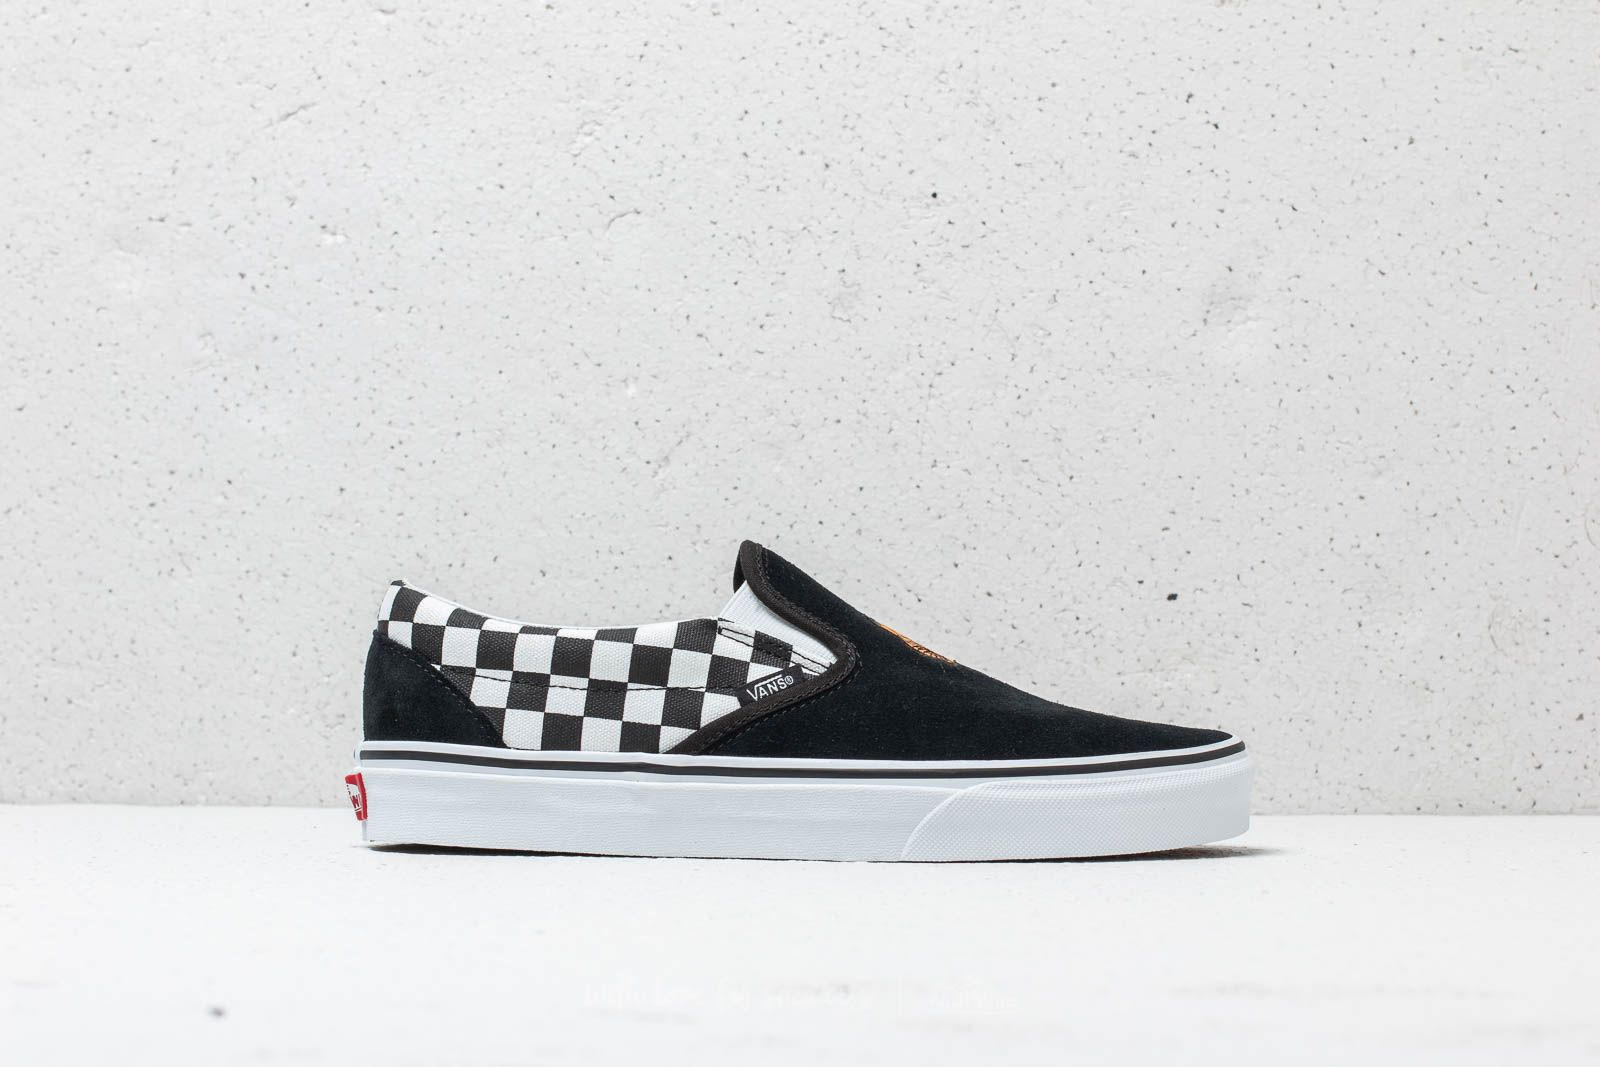 606dd4a0f9f5e6 Vans Classic Slip-On (Tiger Check) Black  True White at a great